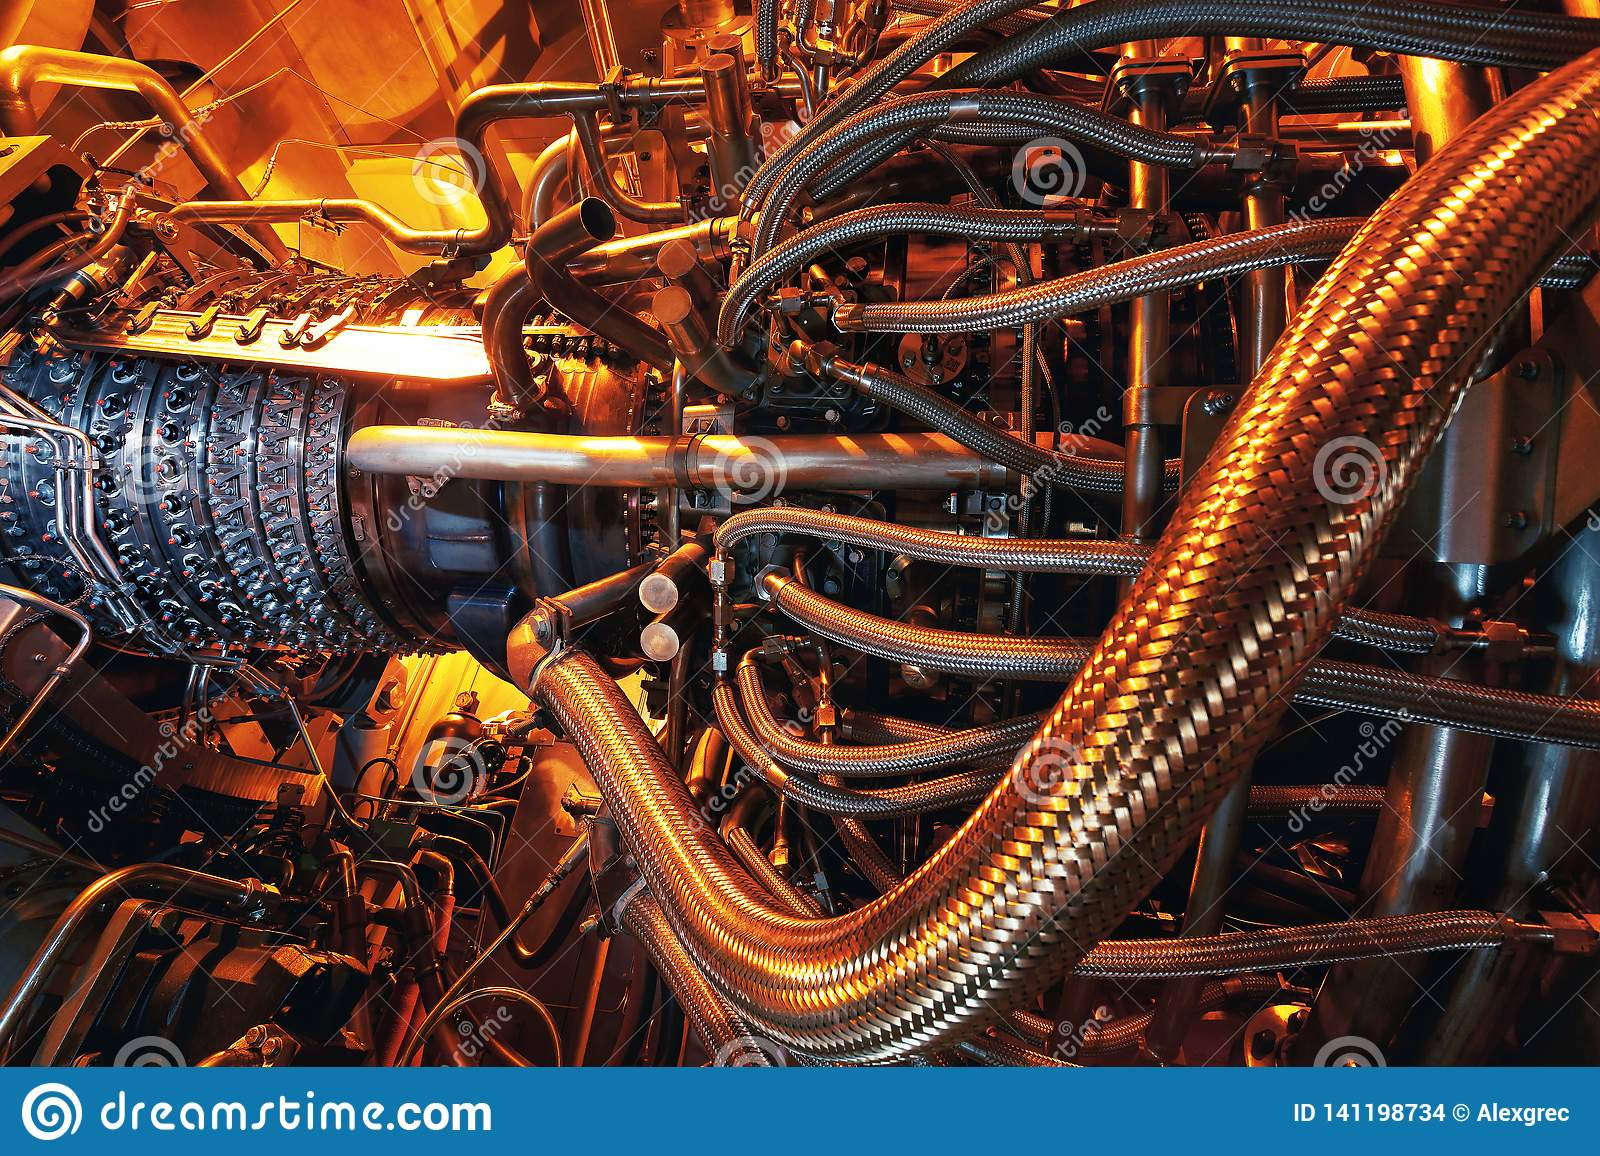 Gas turbine engine located inside the aircraft. Clean energy in a power plant used on an offshore oil and gas refining central